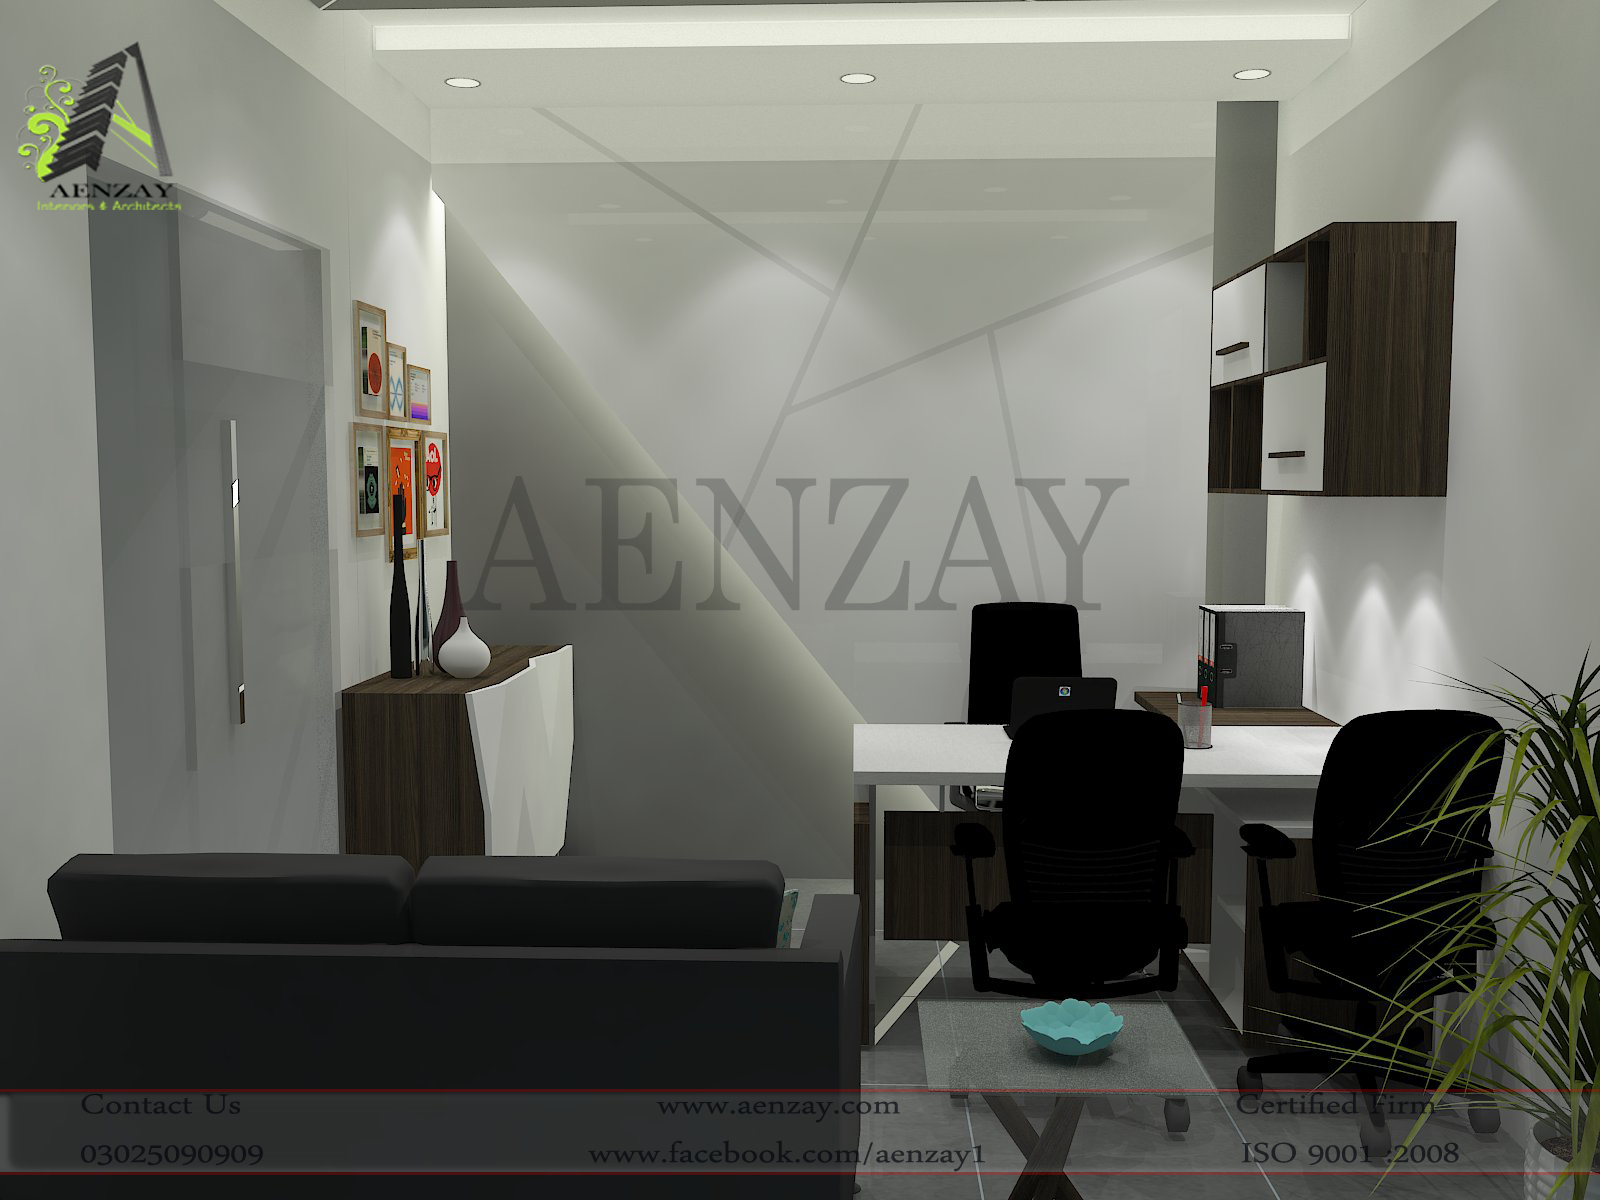 Software House Manager Room Designed by AenZay  Aenzay Interiors  Architecture